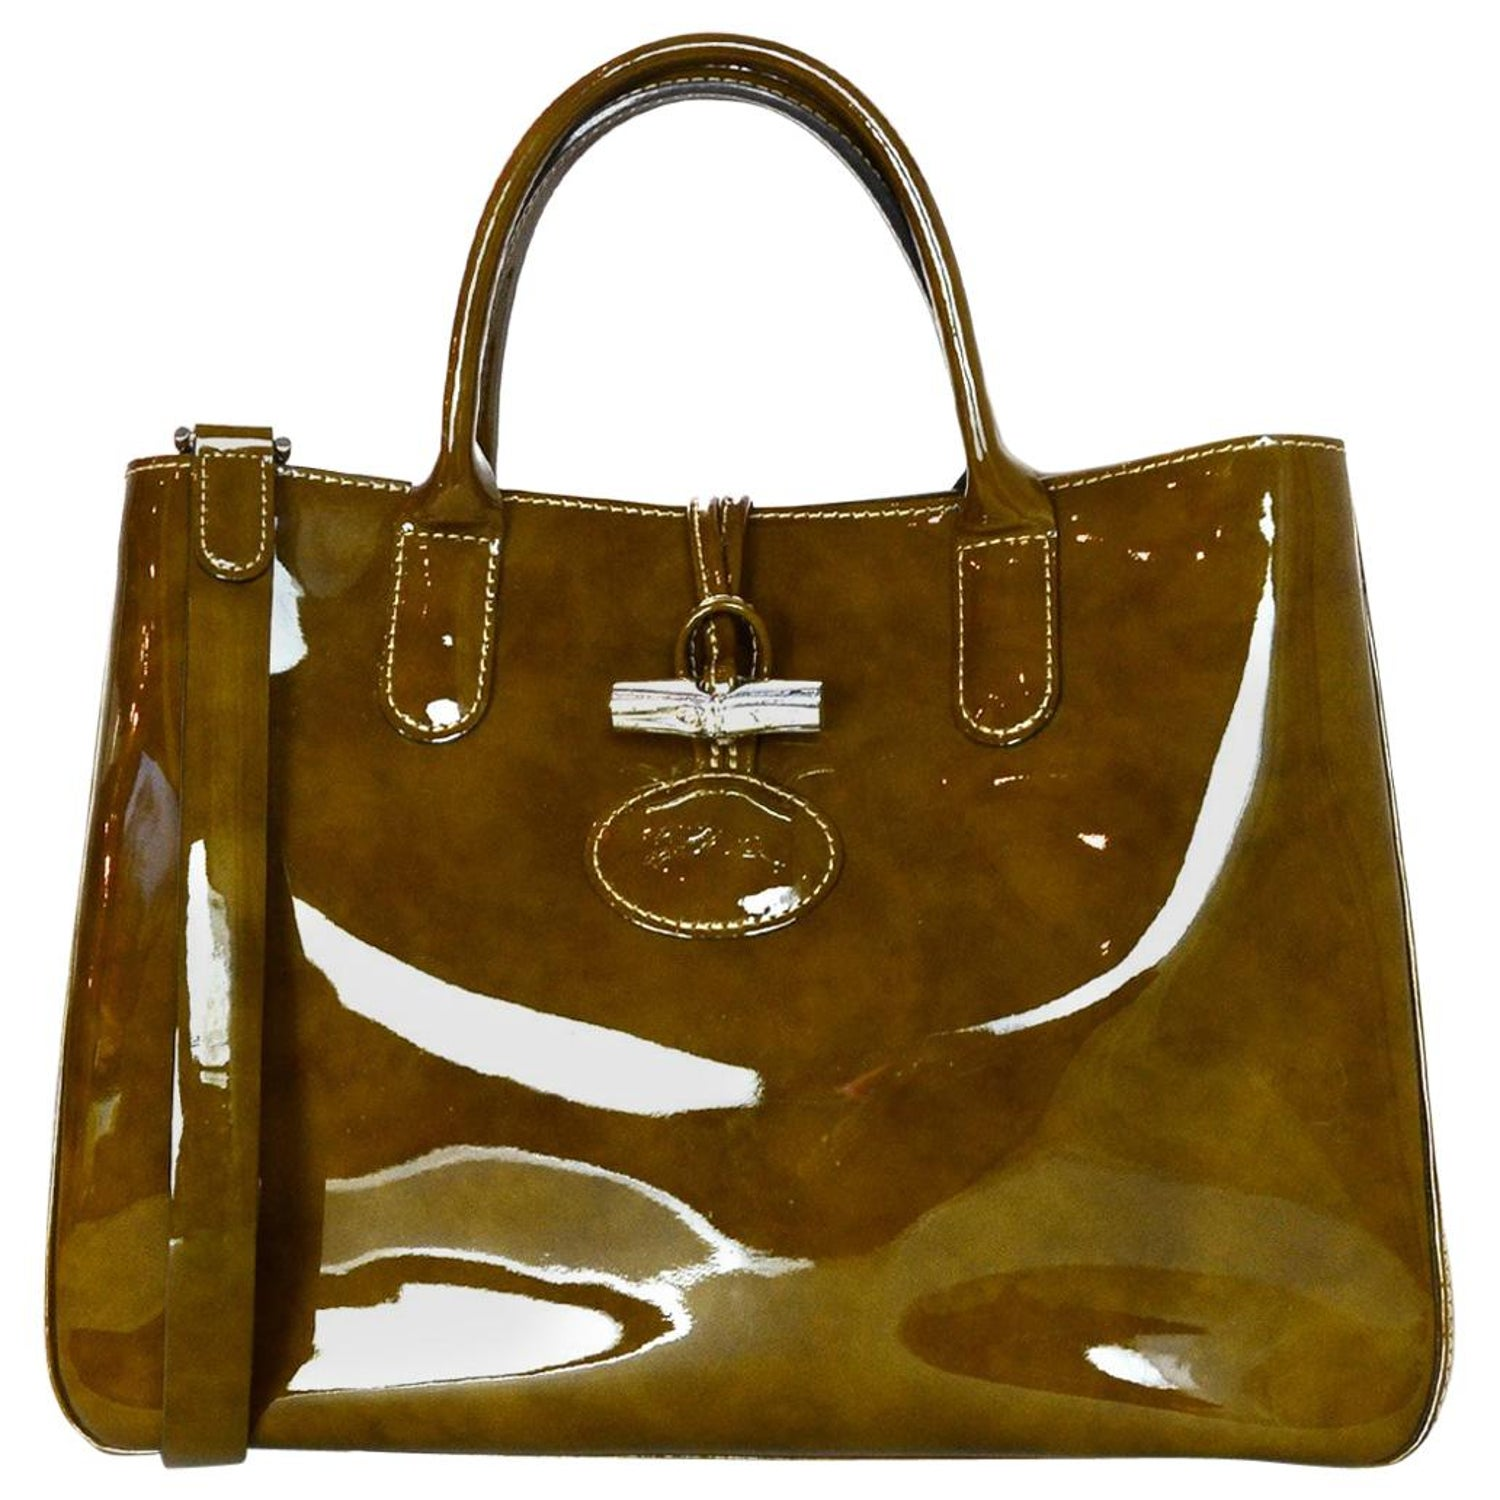 96f010c5802e Longchamp Brown Tortoise Patent Leather Medium Roseau Toggle Tote Bag W/  Strap For Sale at 1stdibs